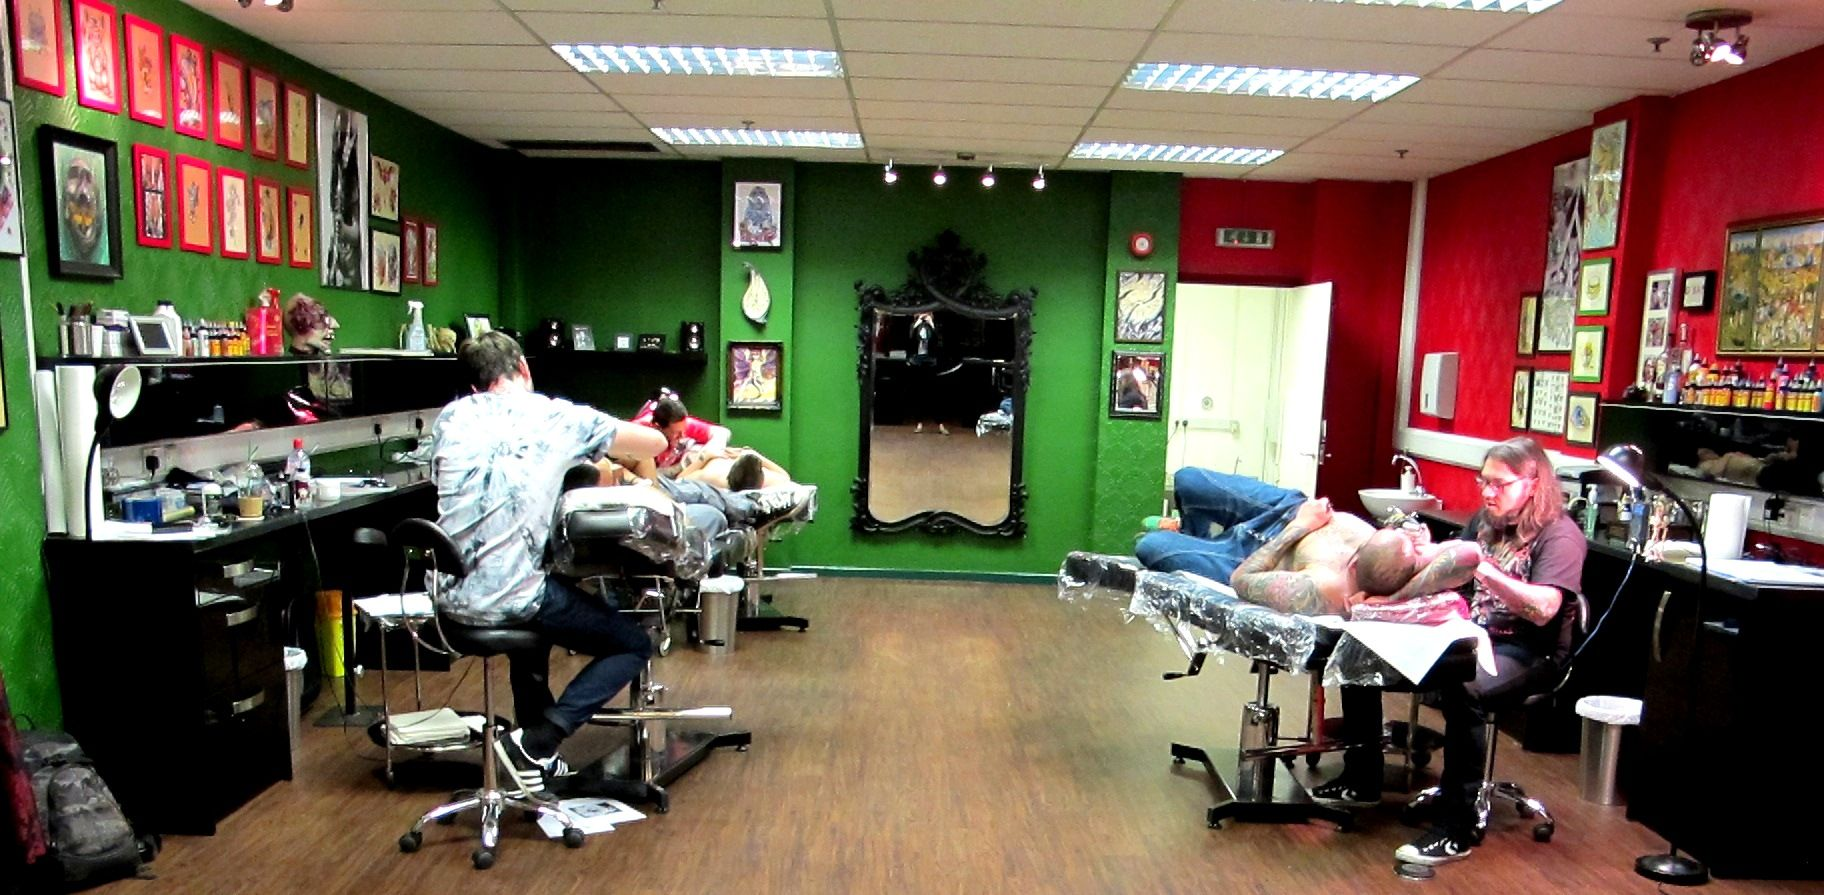 Body garden tattoo shop birmingham the green room for The green room birmingham